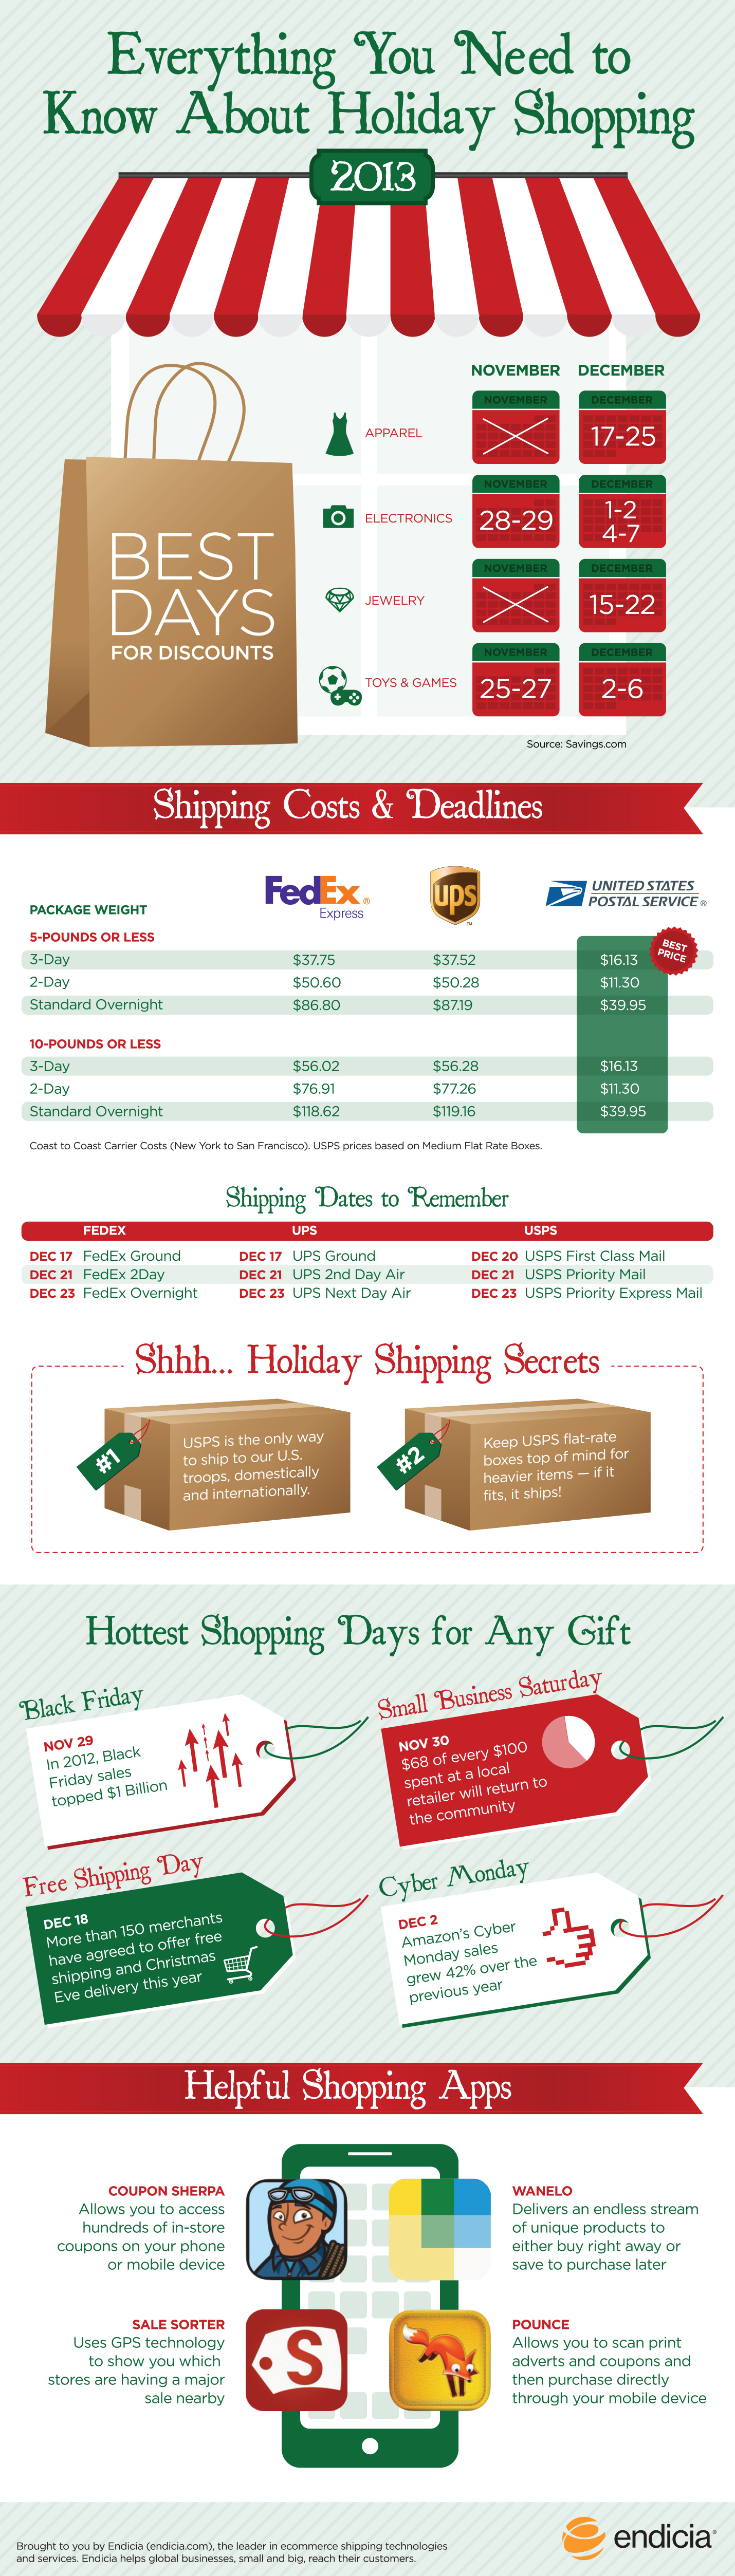 Endicia_holiday_infographic_2